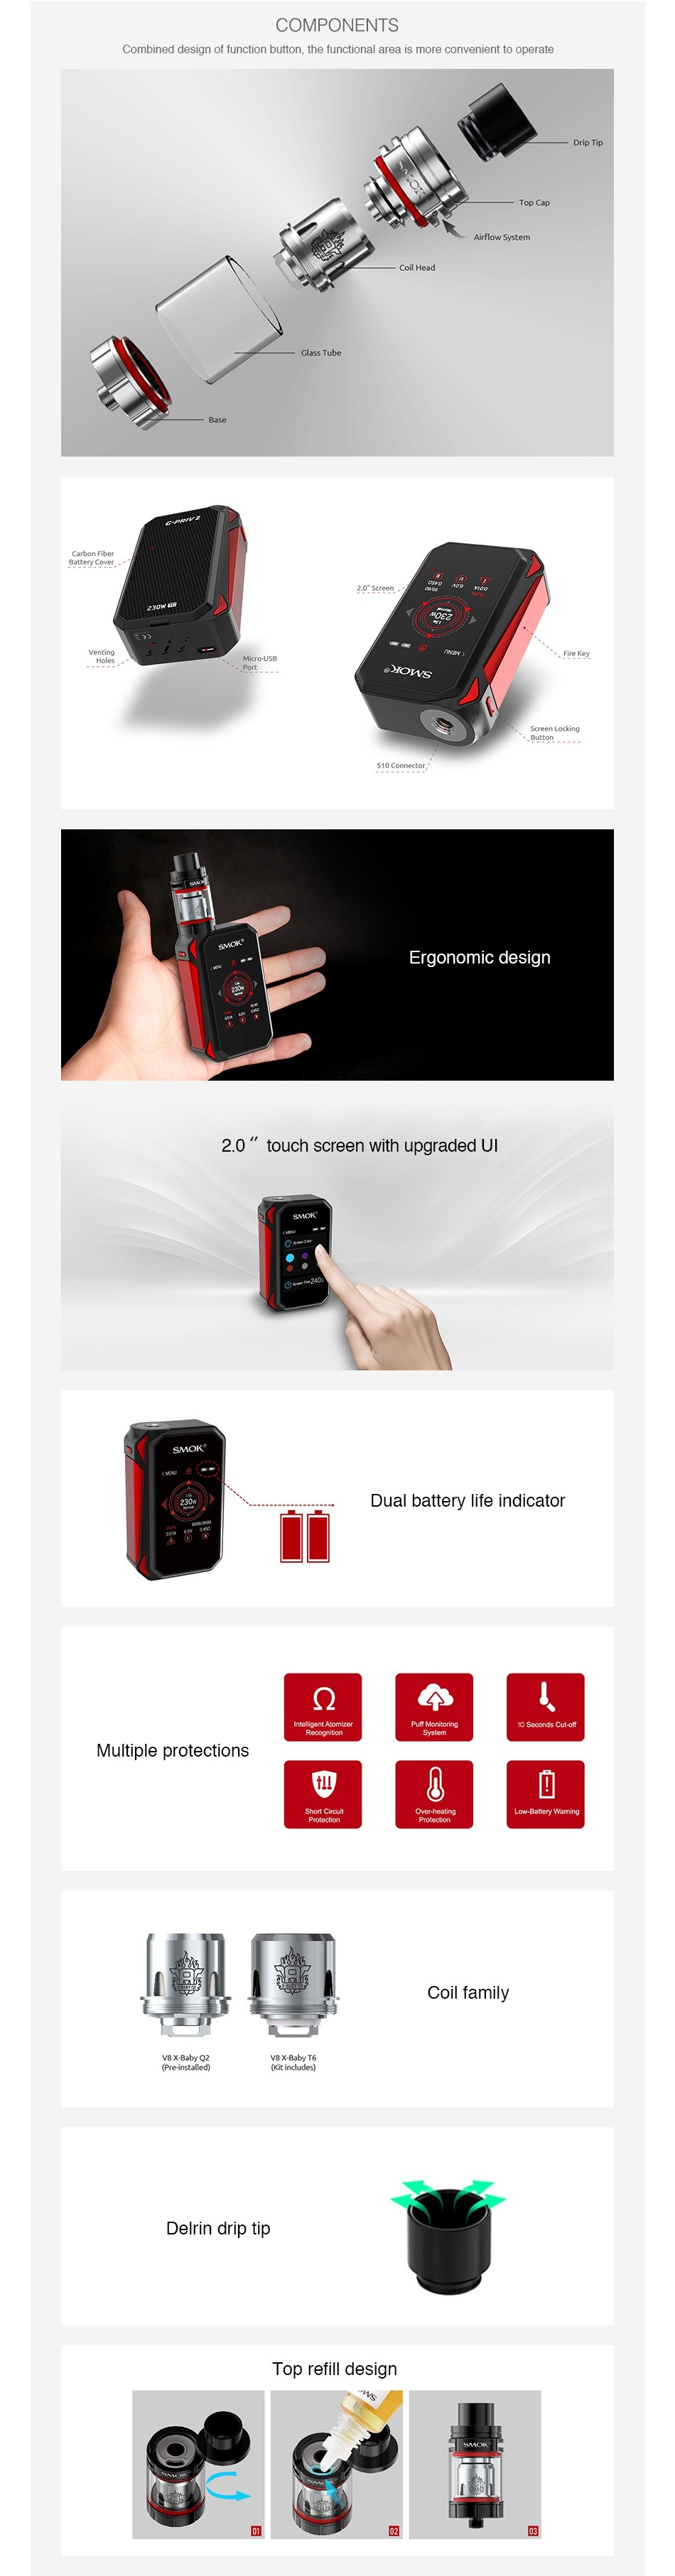 SMOK G-PRIV 2 230W with TFV8 X-Baby Kit COMPONENTS ConLitnad ues gn uf functon bu Lrl  Lhe luriclionral aea is Imole uorIvefErIl IU pale Ero Multiple protections Coil family Delrin drip tip